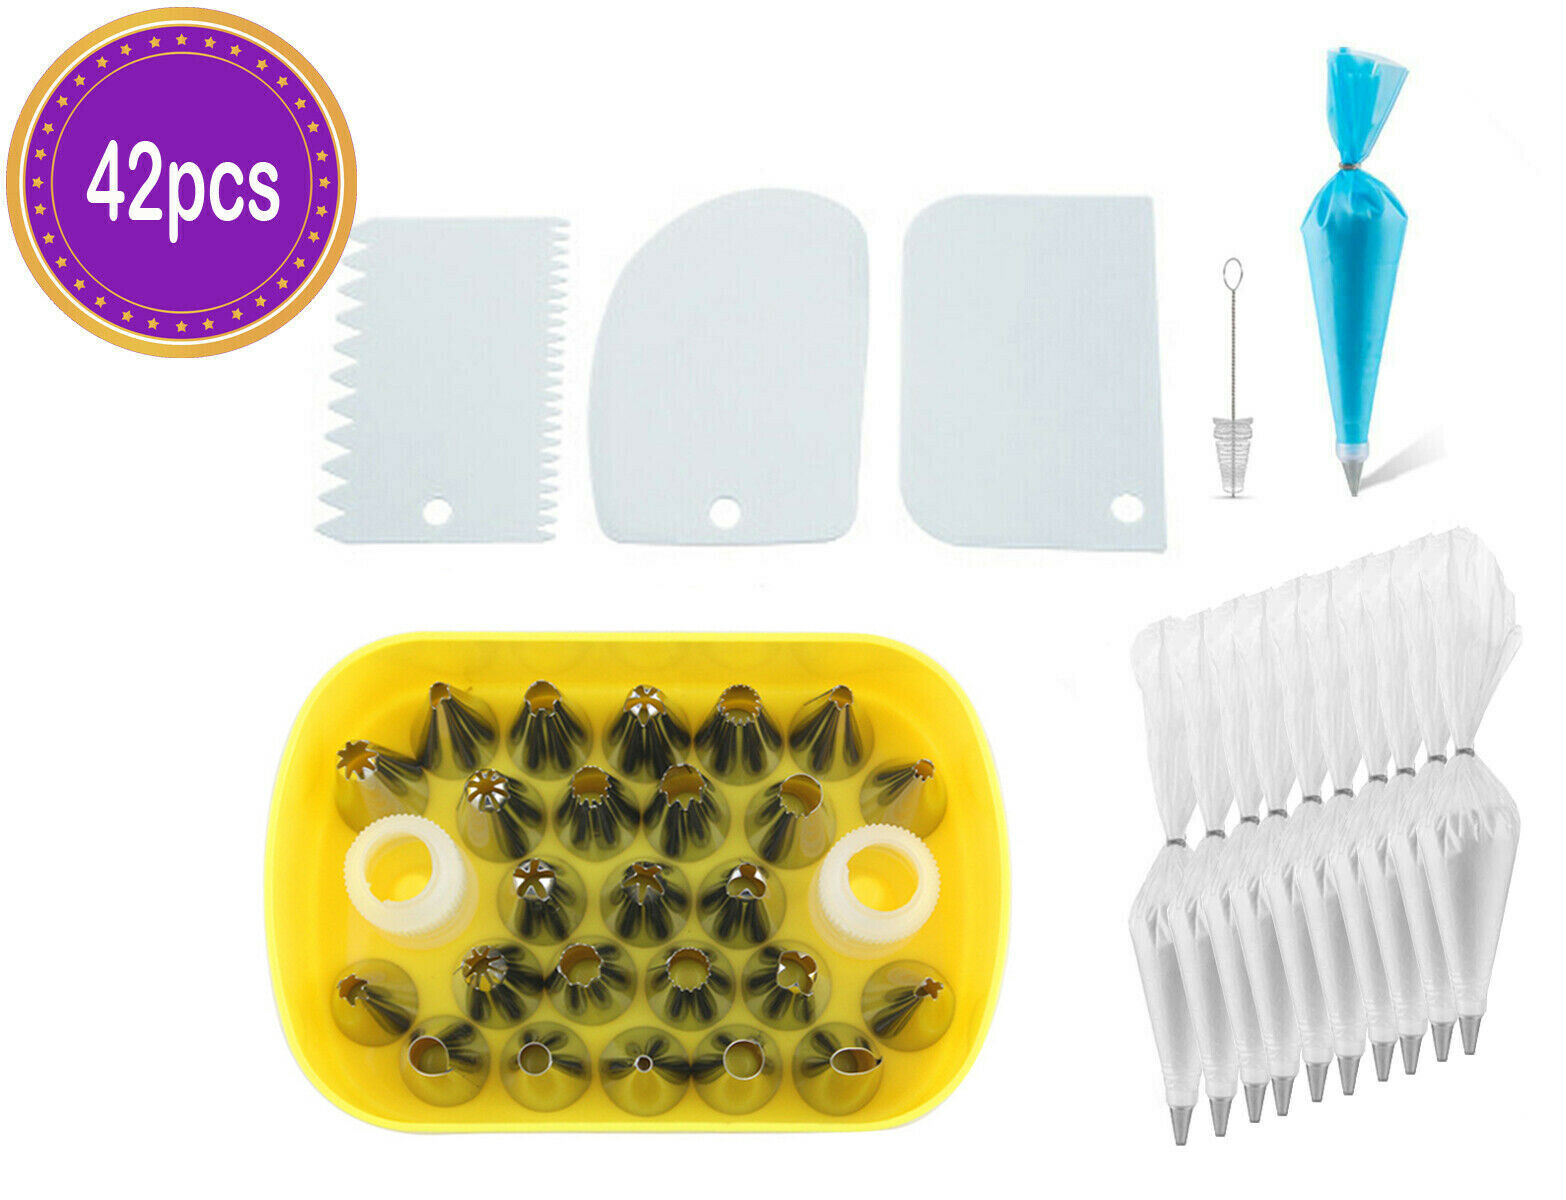 56 pcs Icing Nozzle Tubes Set include 1 Pastry Reusable Bag Baking Accessories